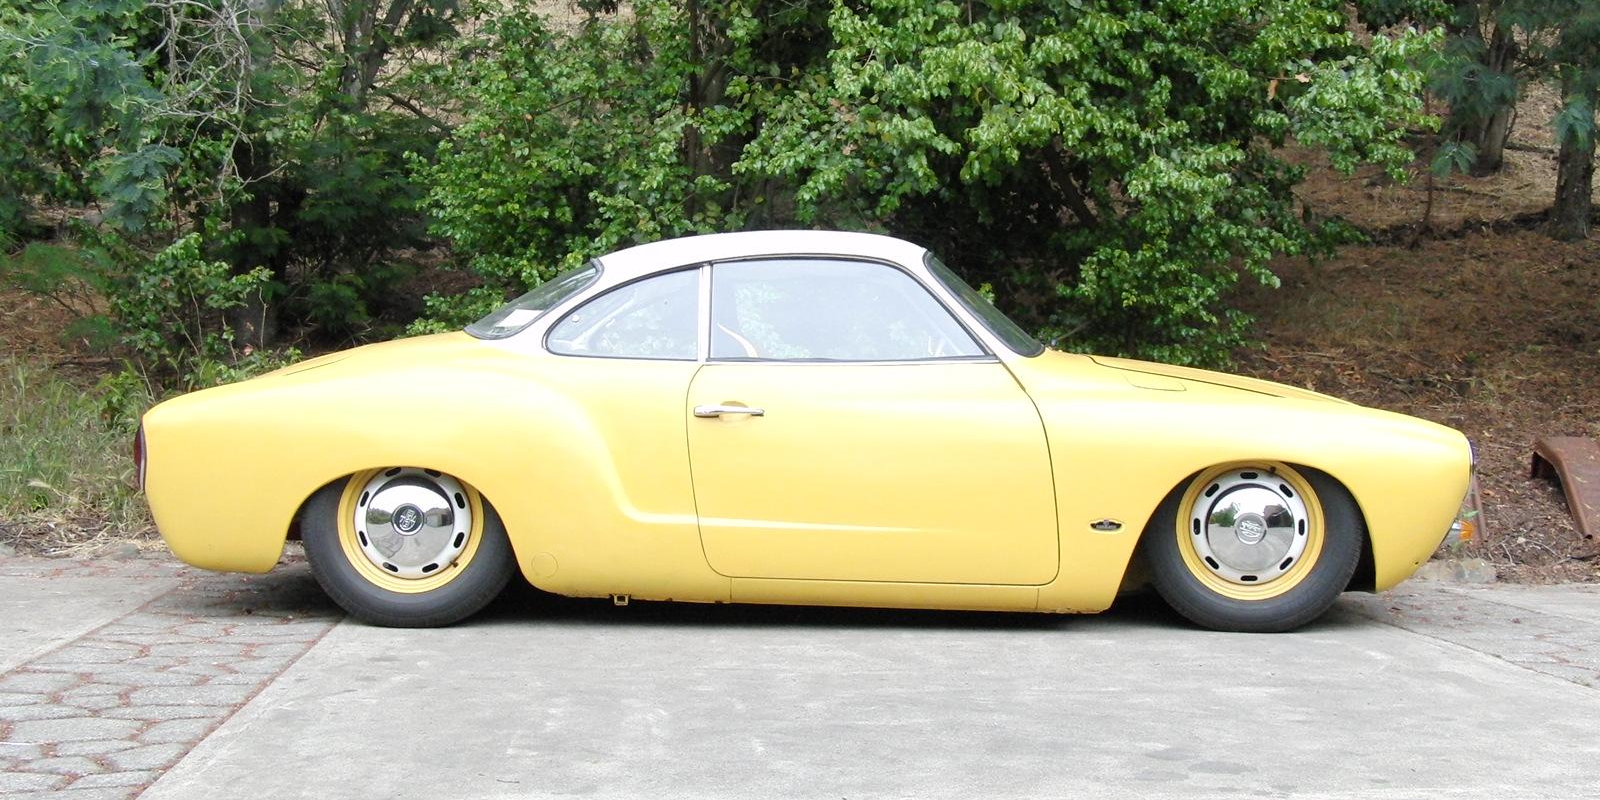 vw-karmann-fhia